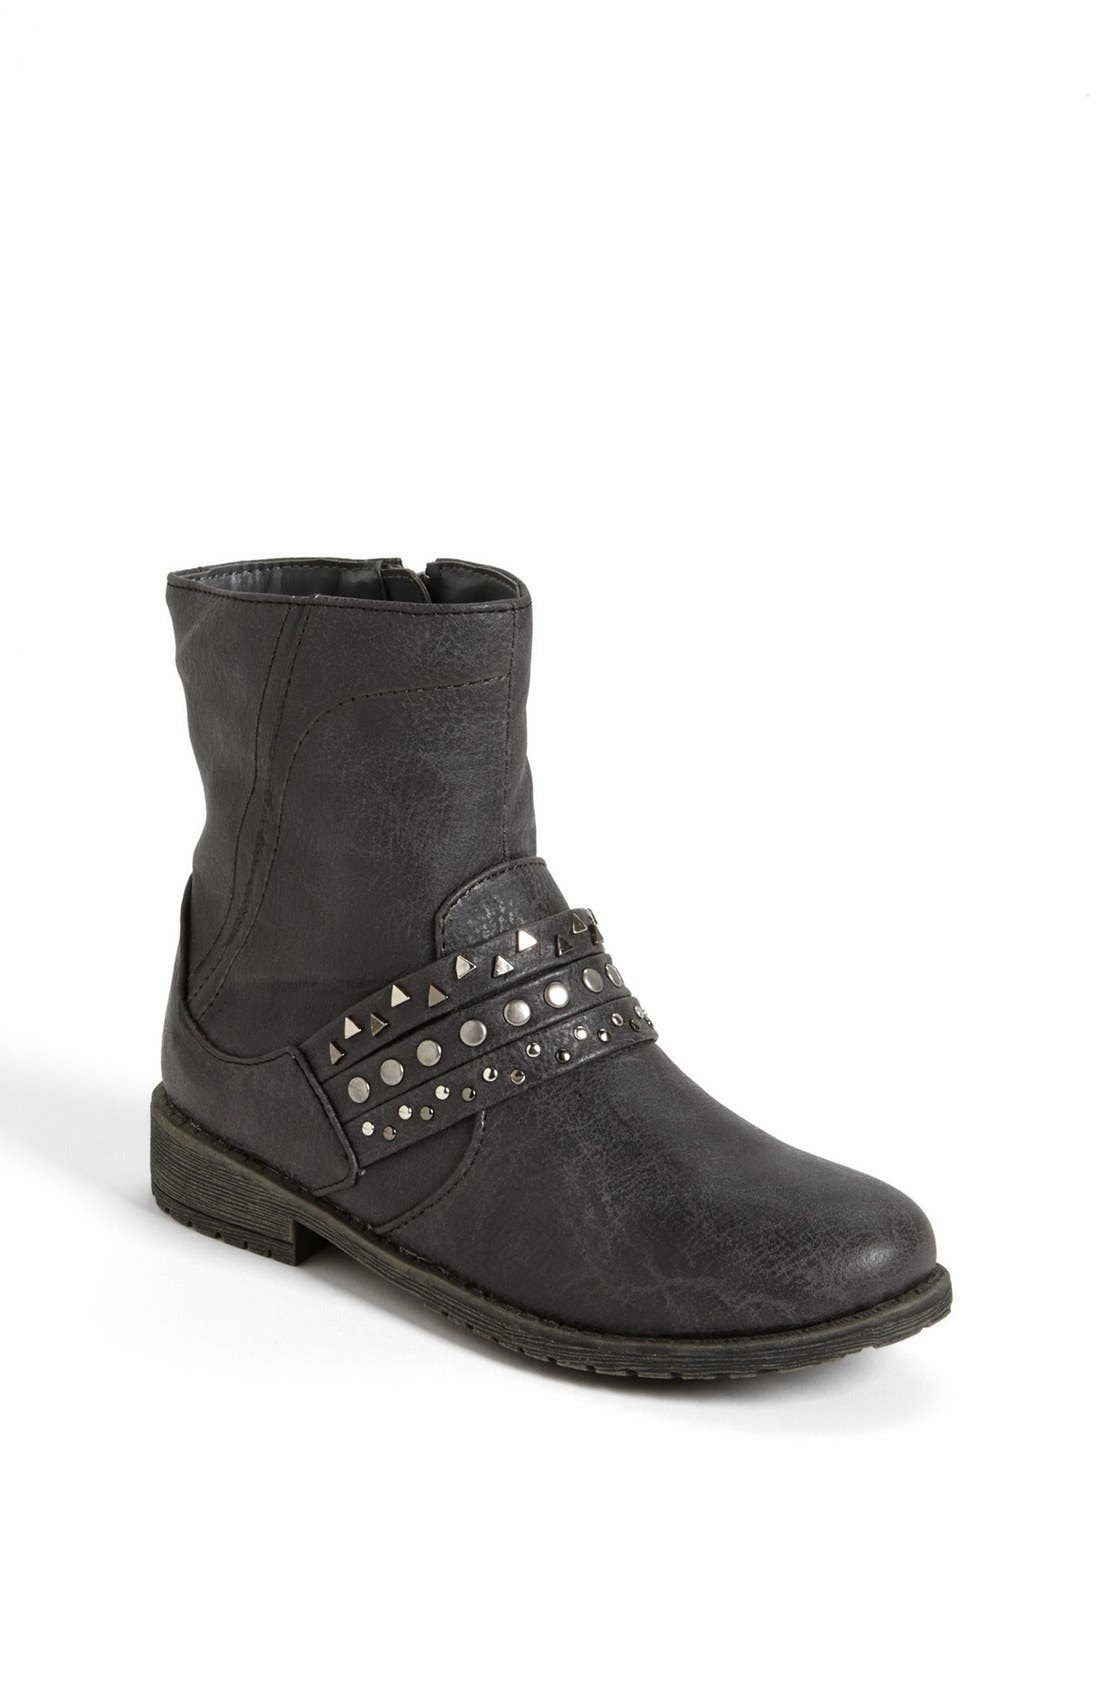 Main Image - Kenneth Cole Reaction 'Piece of Flake' Boot (Little Kid & Big Kid)